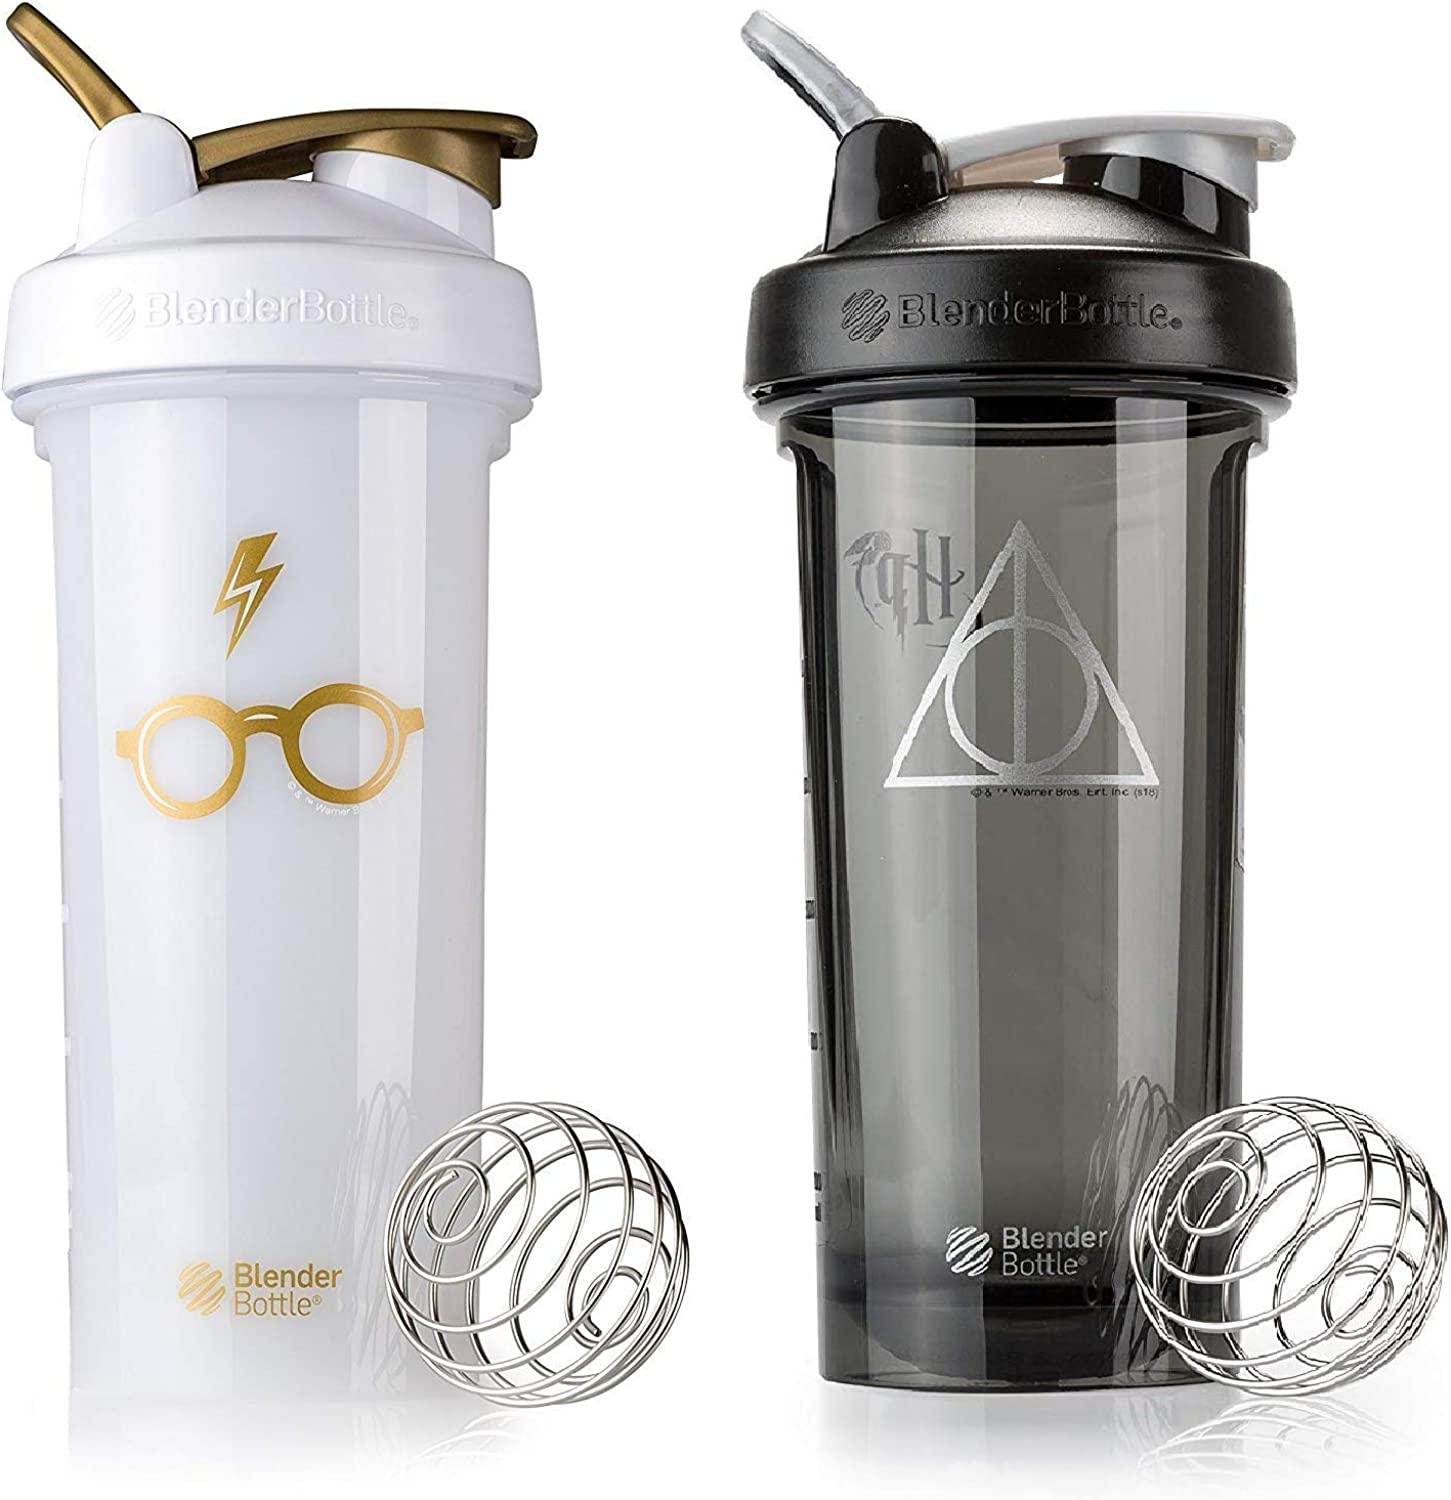 Blender Bottle Pro Series - 2 Pack - Glasses and Deathly Hallows Designs - 28 oz